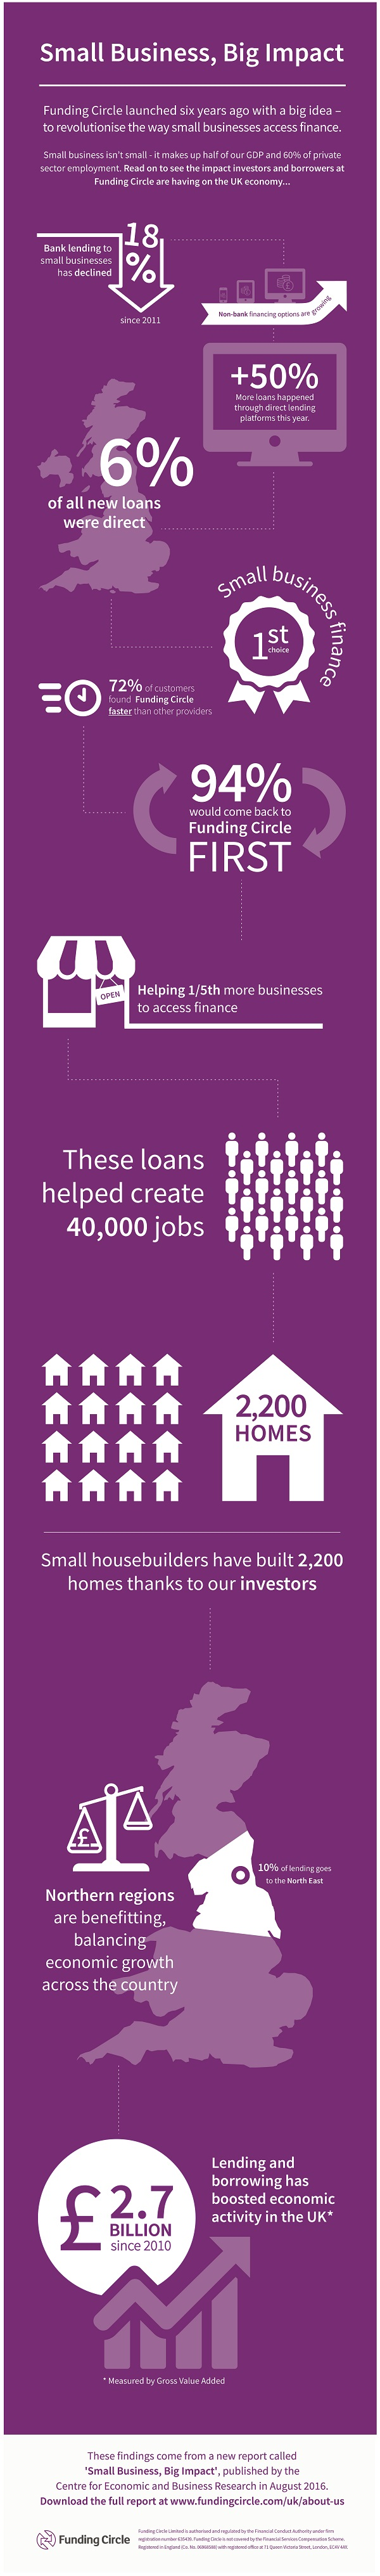 small_business__big_impact_infographic-4